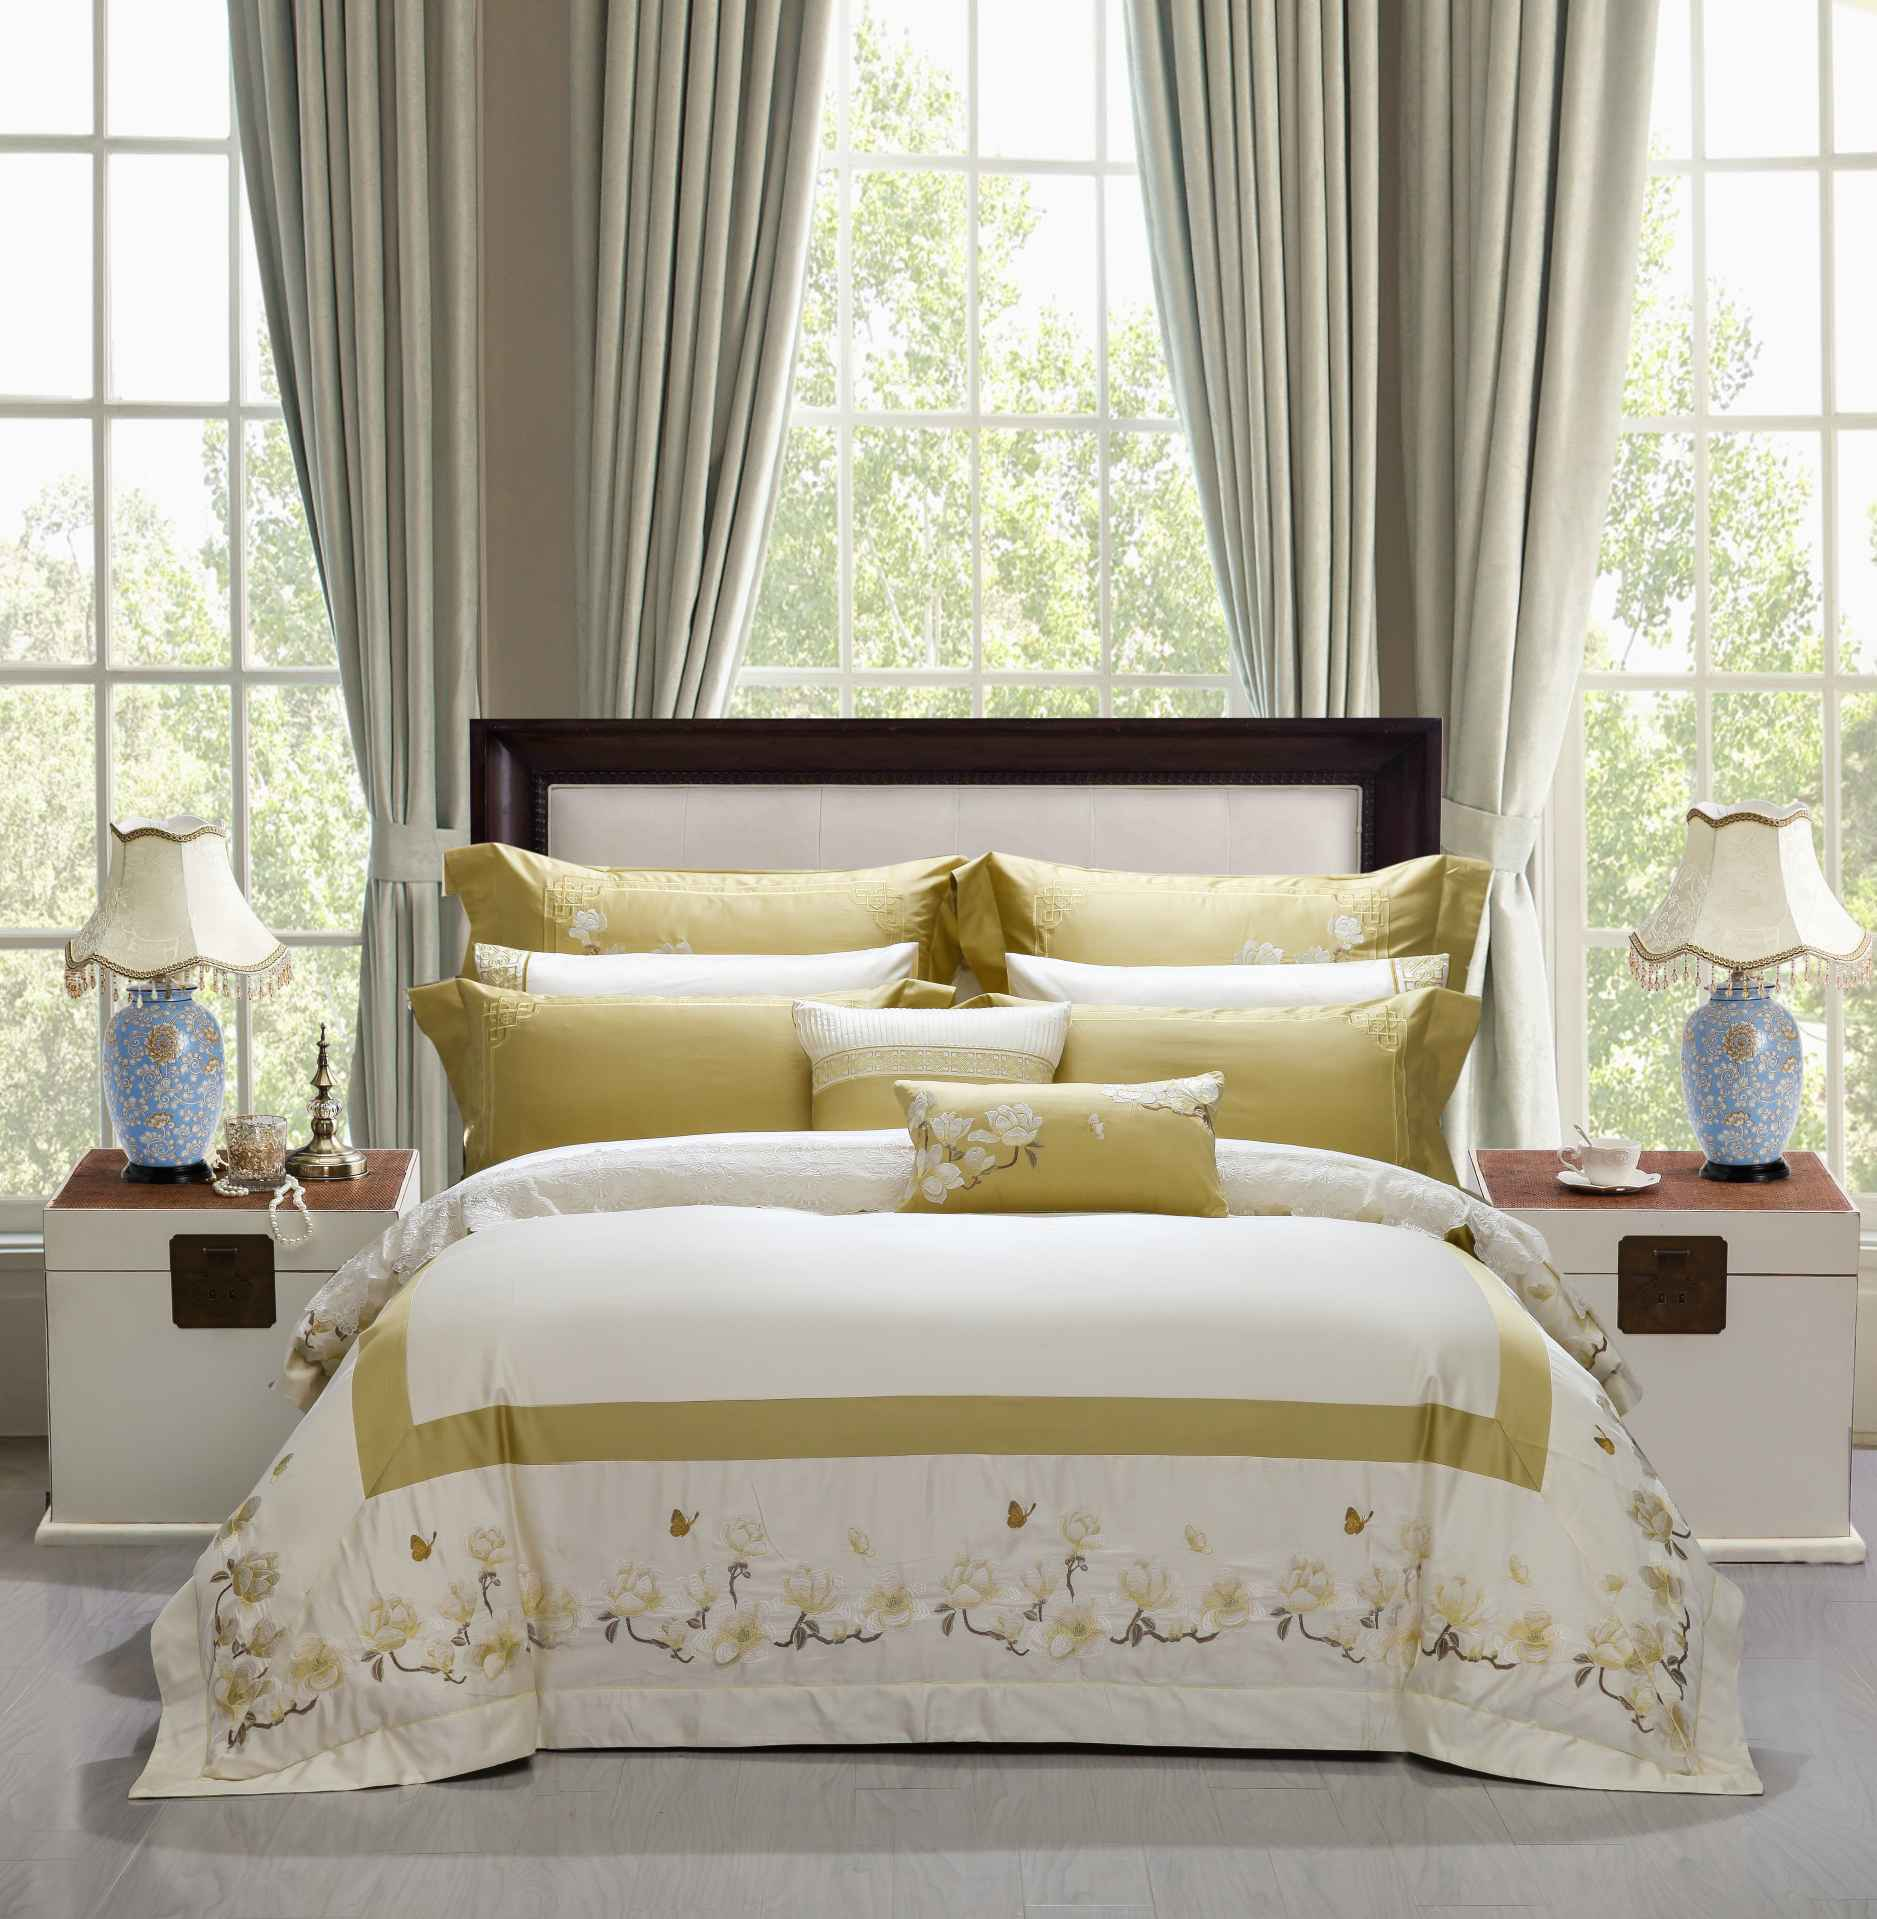 Magnolia Embroidery Cotton Bedding 6889